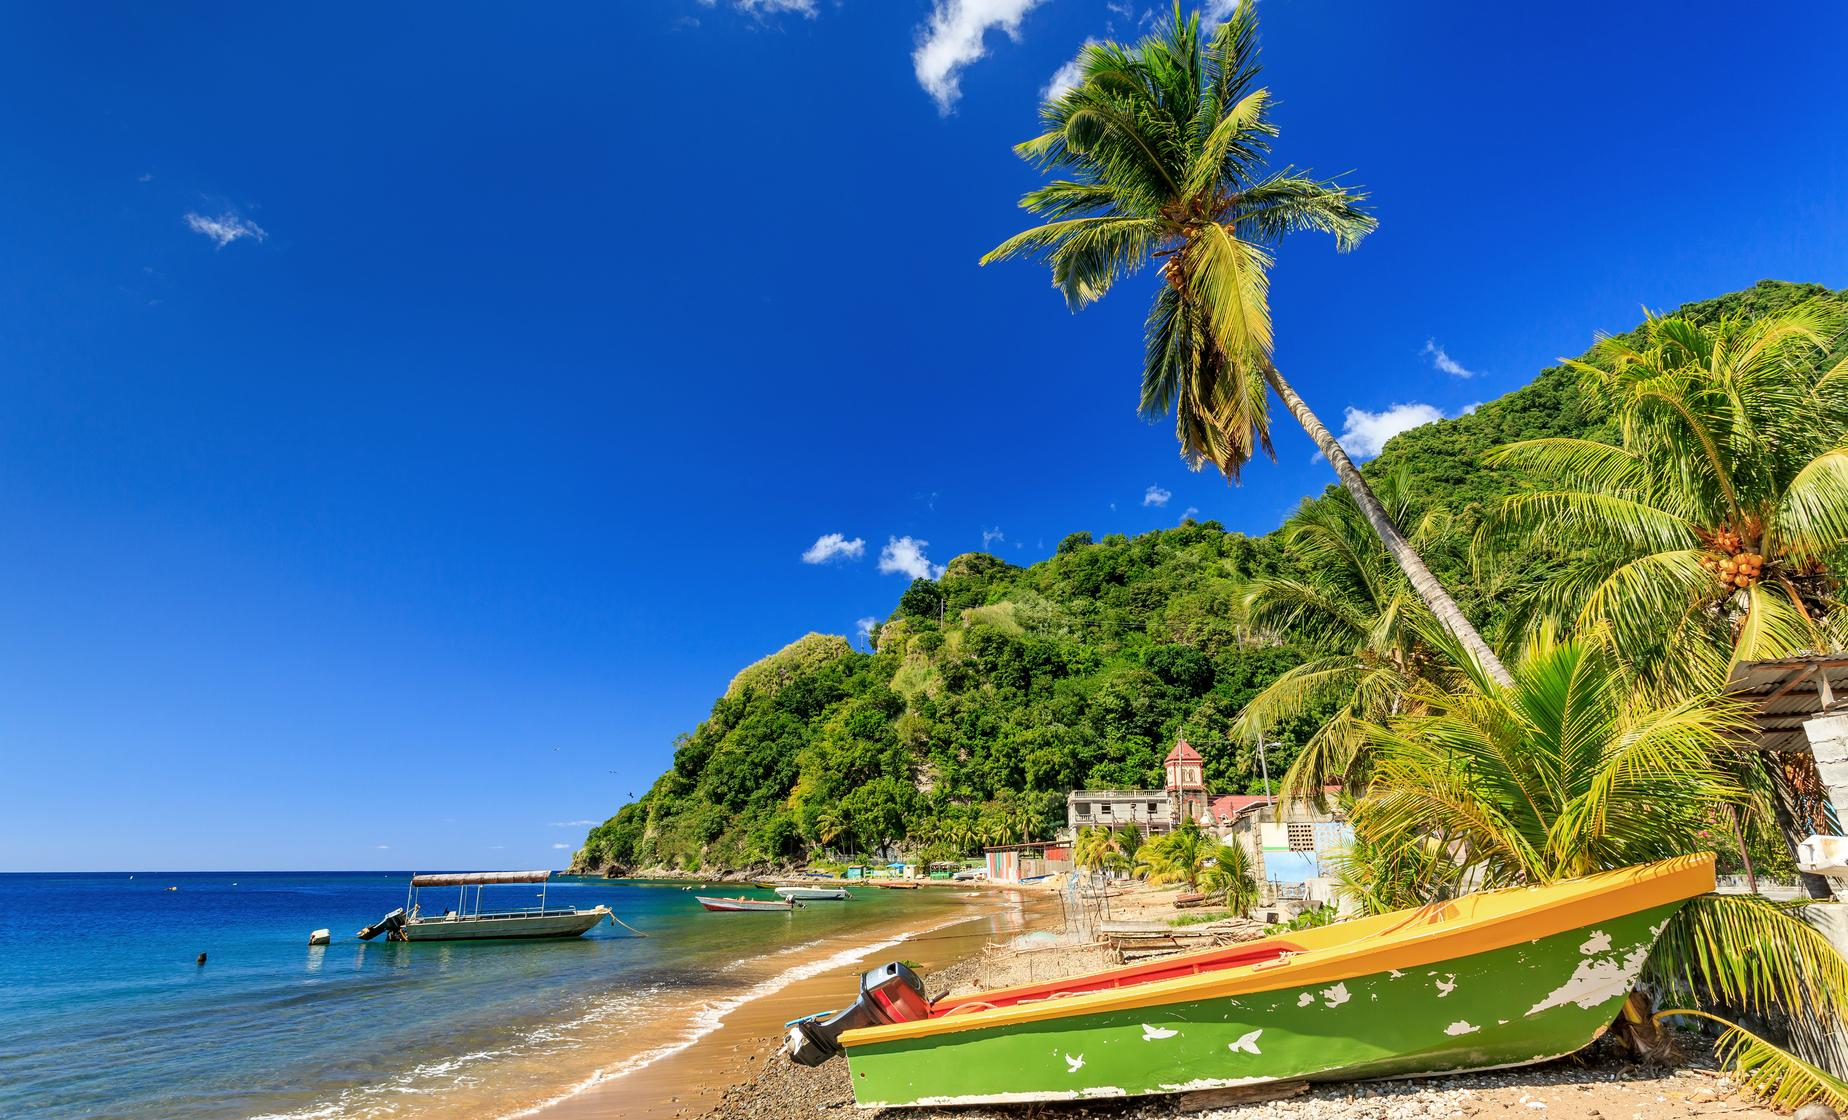 Soufriere Sea-Fari